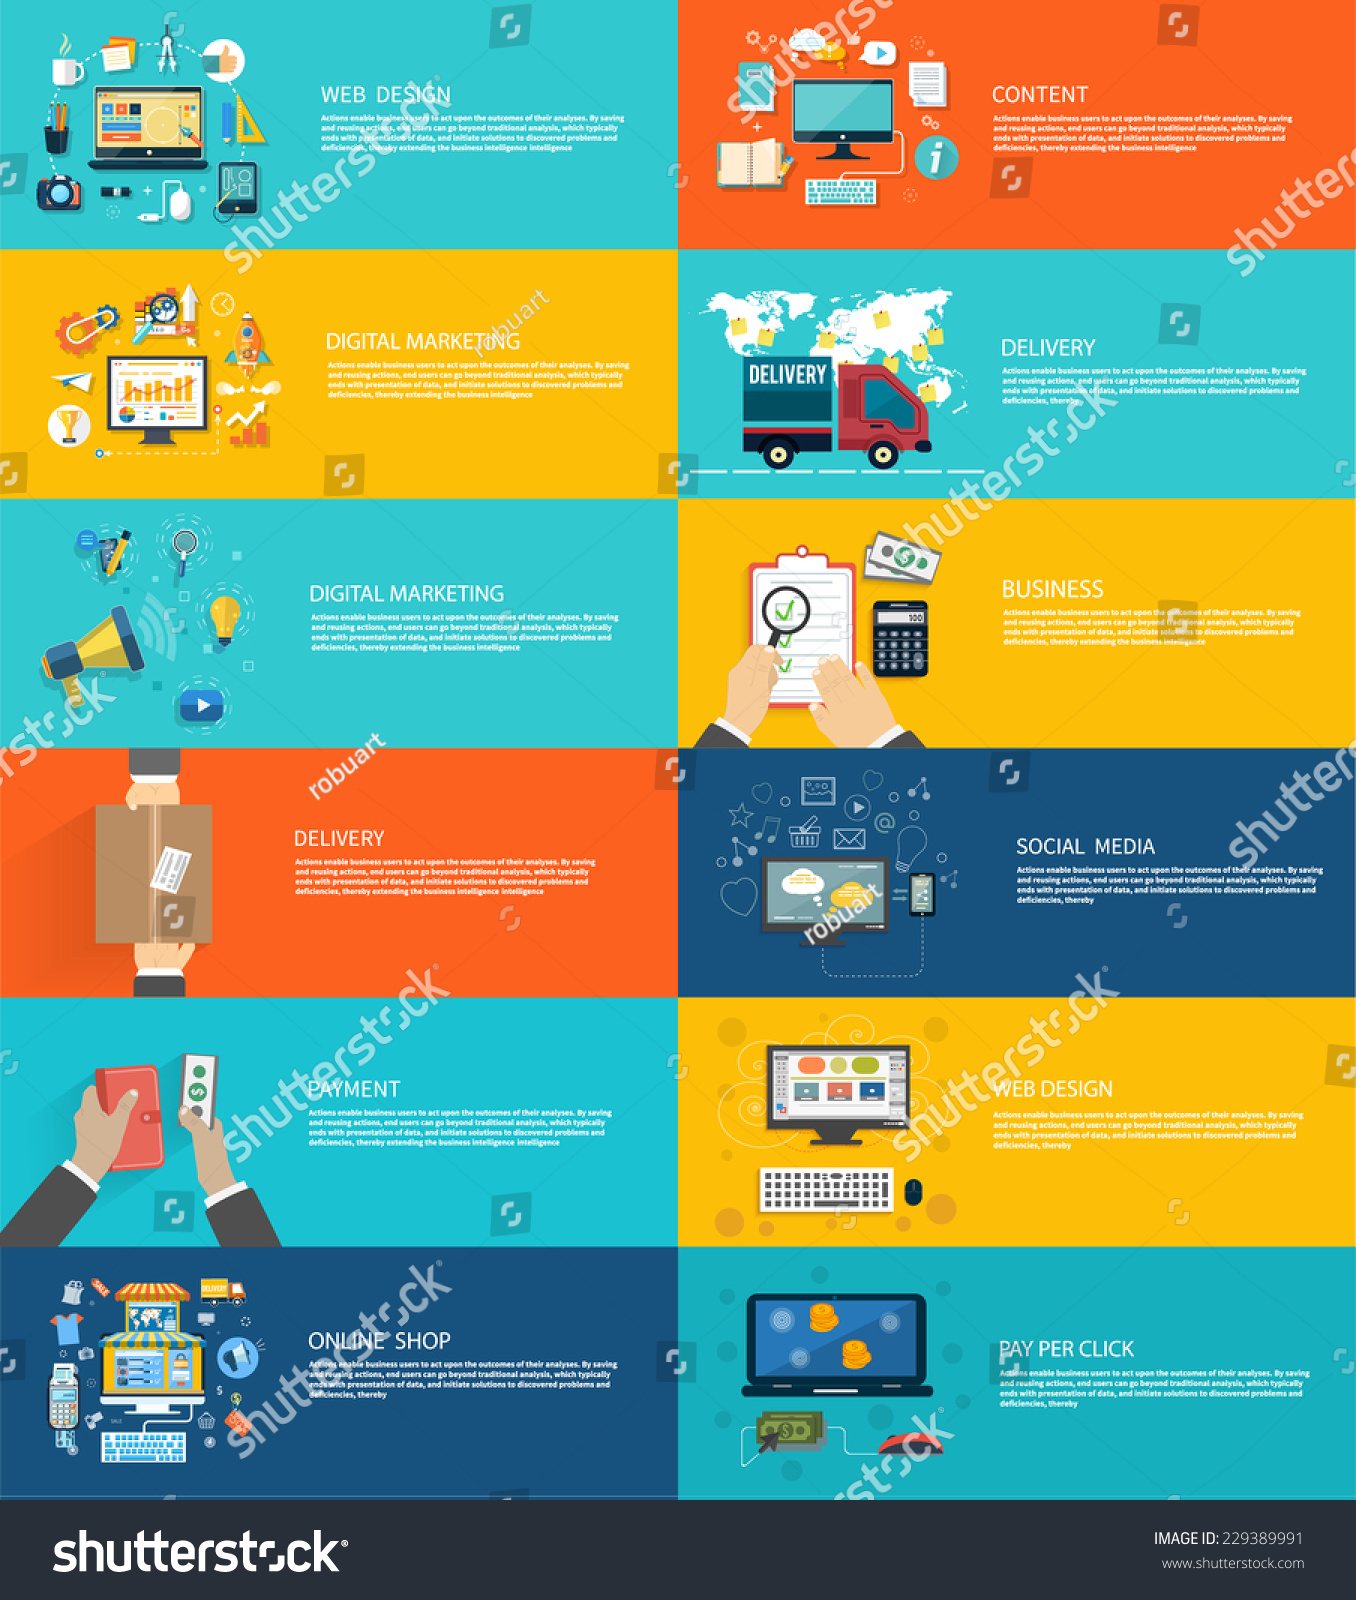 Icons set banners for web design digital marketing delivery payment onlin - Internet shop design ...